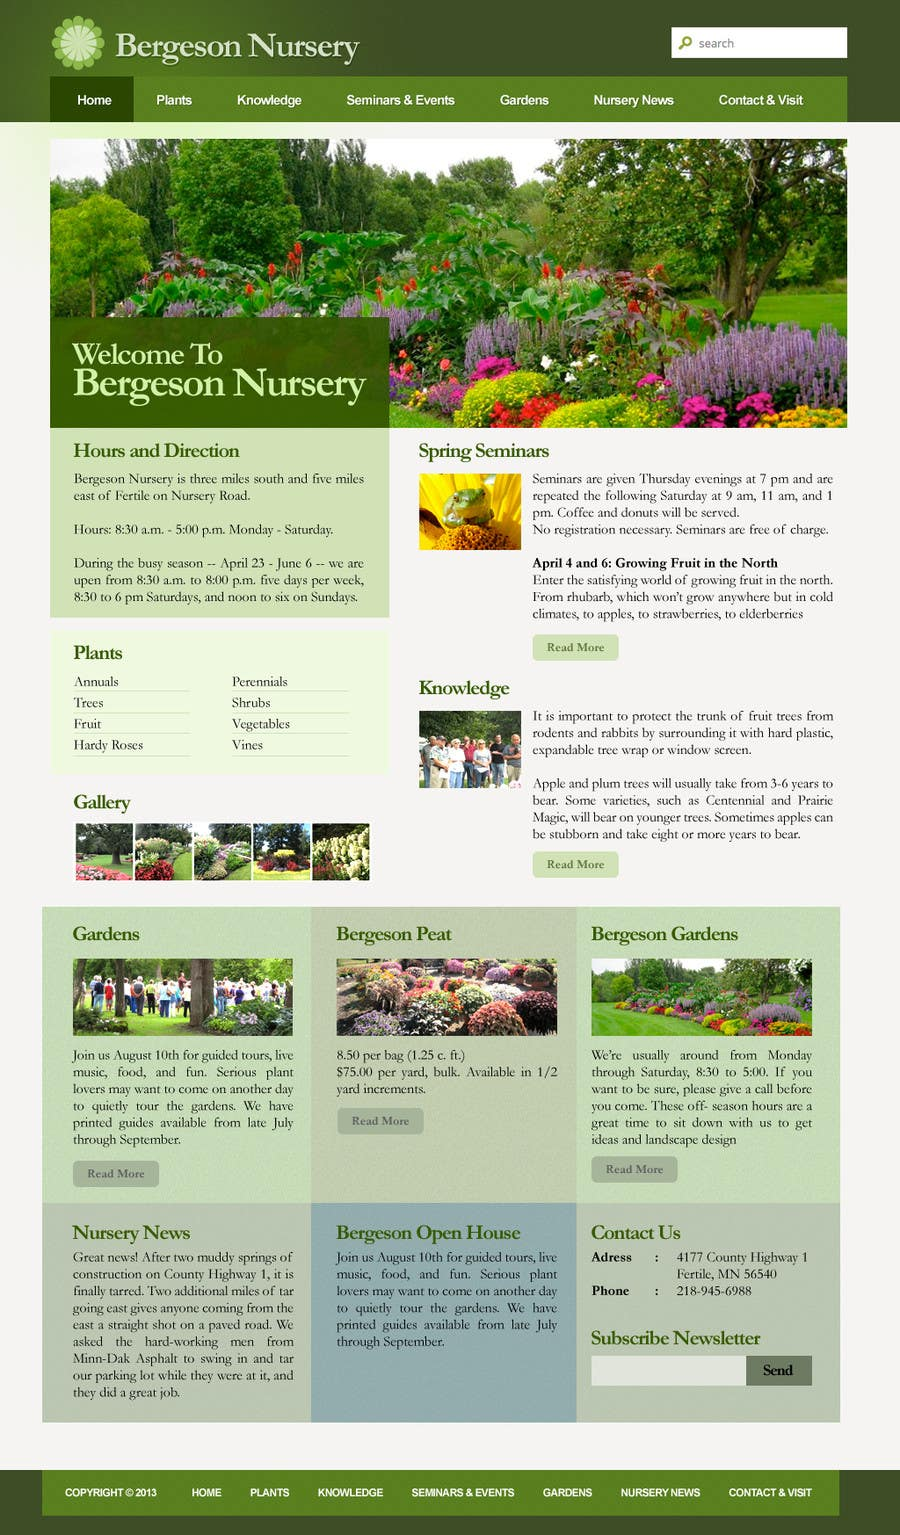 #20 for Design Inspiration for Bergeson Nursery Website by danangm